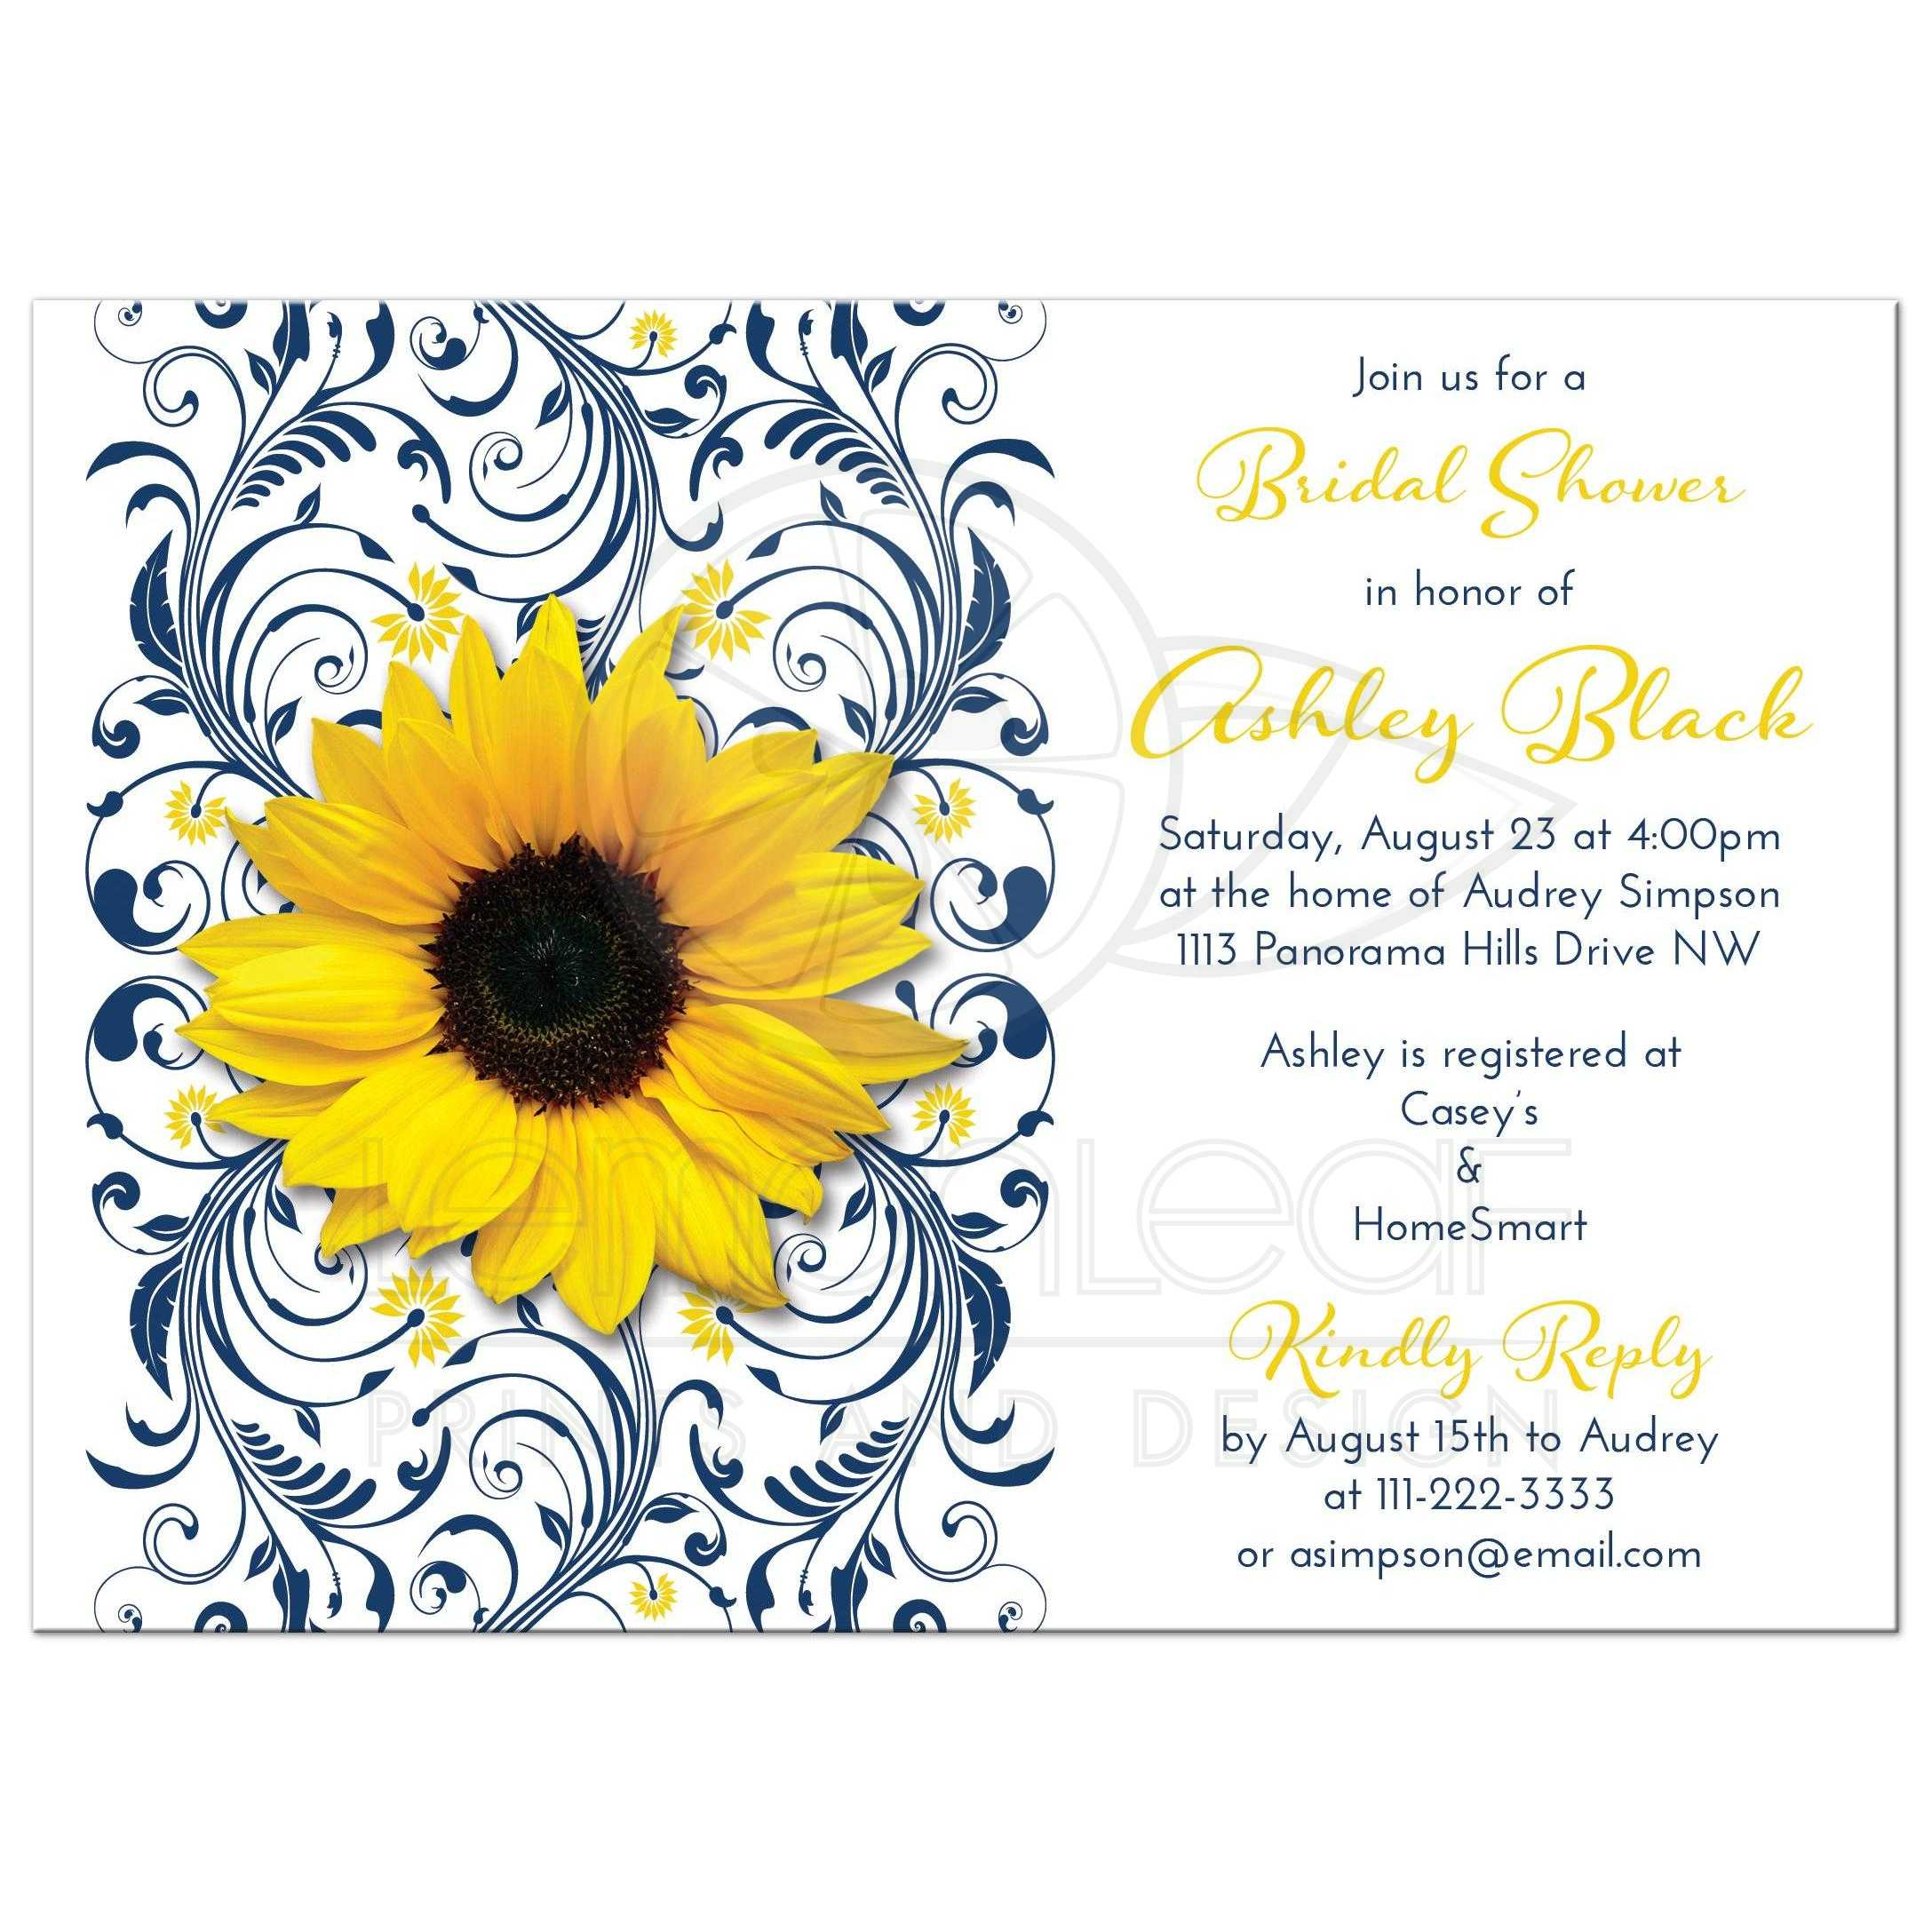 Bridal shower invitation sunflower navy blue floral navy blue and white floral yellow sunflower elegant bridal shower invitation filmwisefo